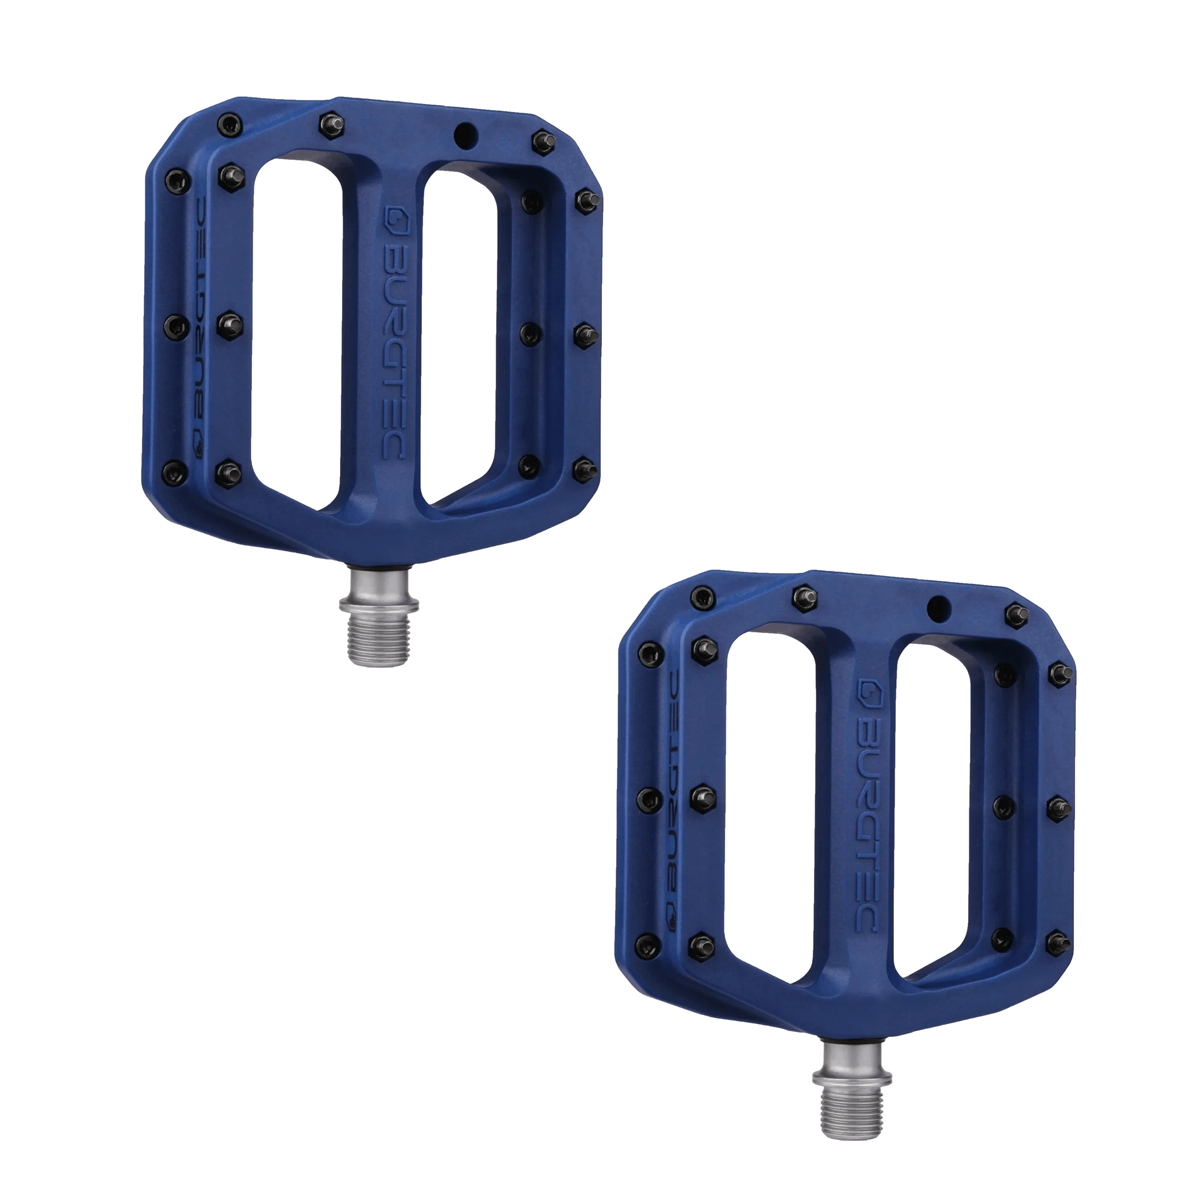 Flat Pedals Set MK4 Composite 1503 Blue